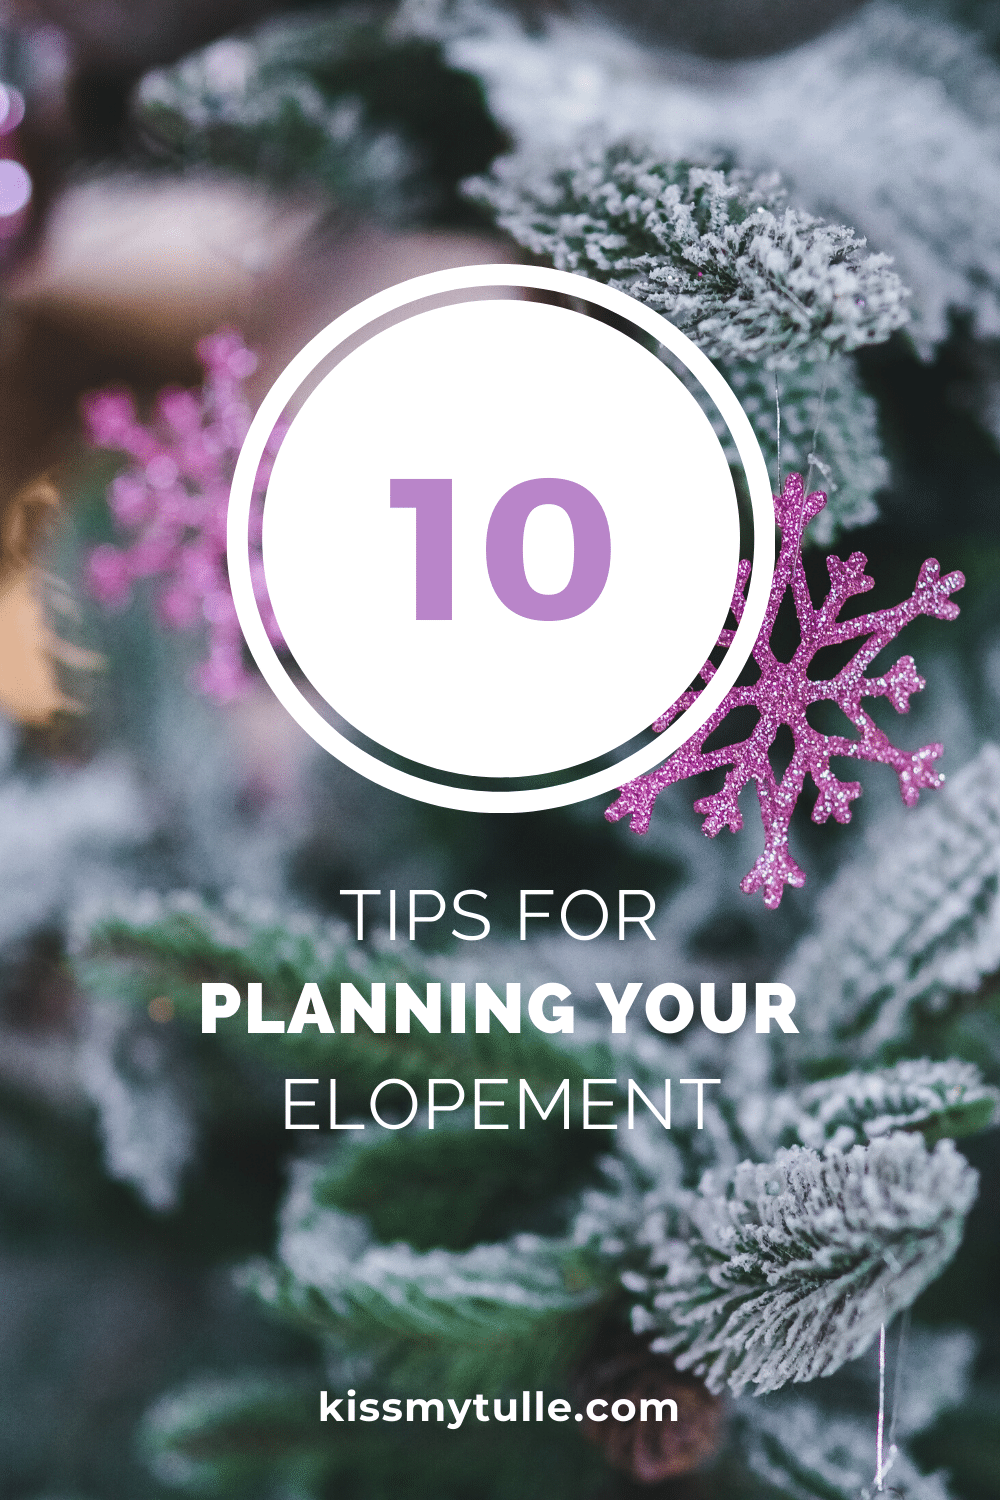 So you're planning an elopement! Awesome! Elopements are a great way to get married on a budget. We're big fans of them around here. But while you might be totally ready to get eloped... you may not be as familiar with how to do it. And that's where we come in! Here's 10 tips for planning your elopement!